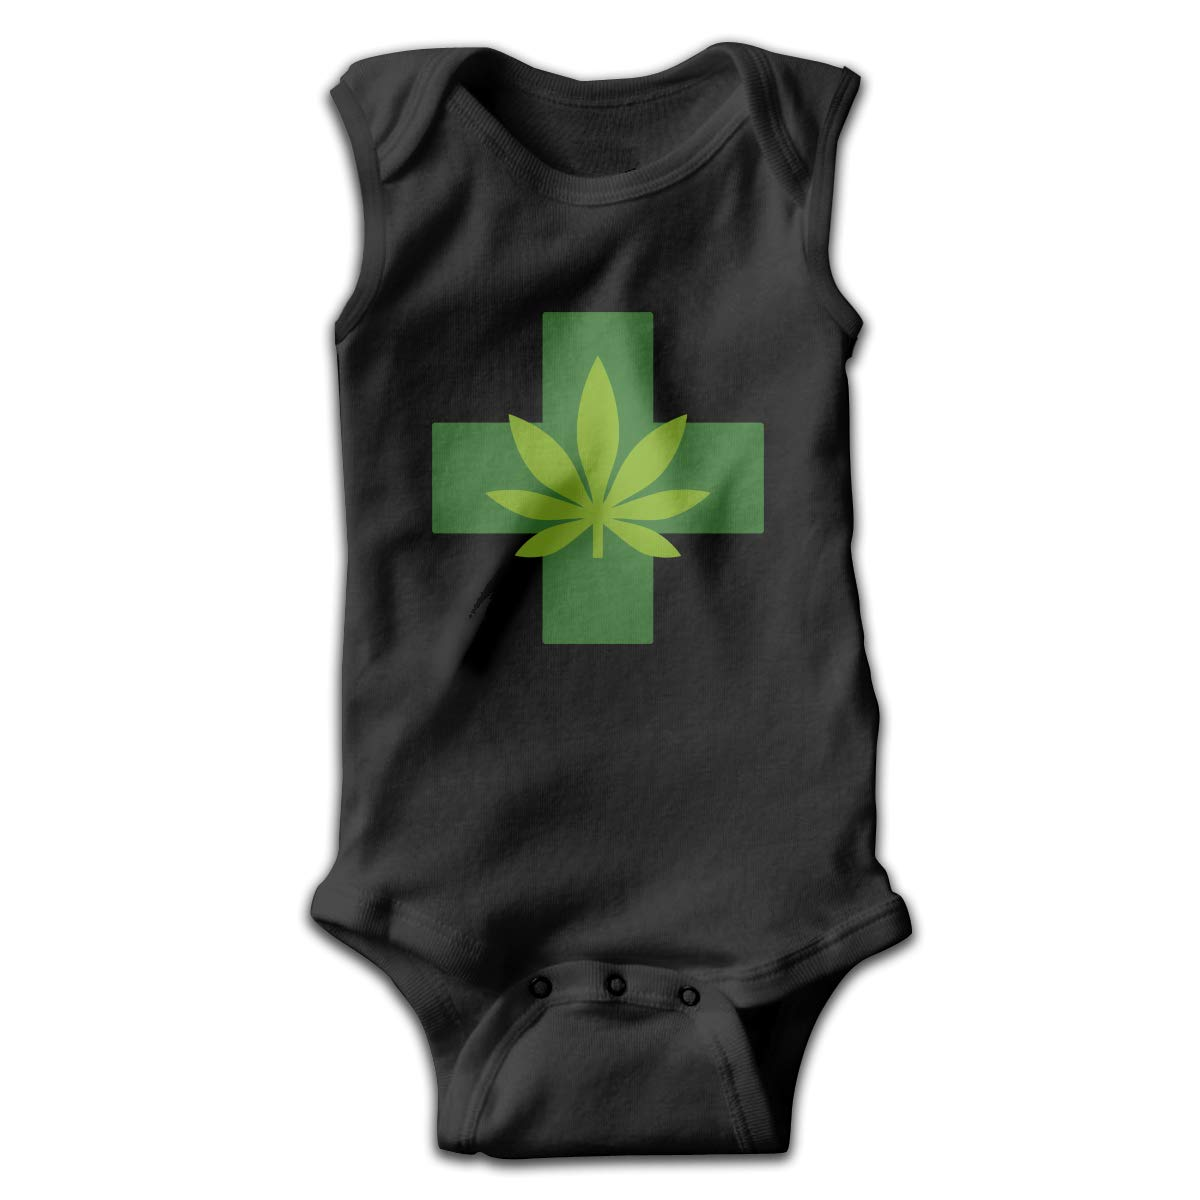 Medical Marijuana Pot Leaf Cross Baby Clothes Sleeveless Cute Funny Toddler Summer Romper Gift for Baby